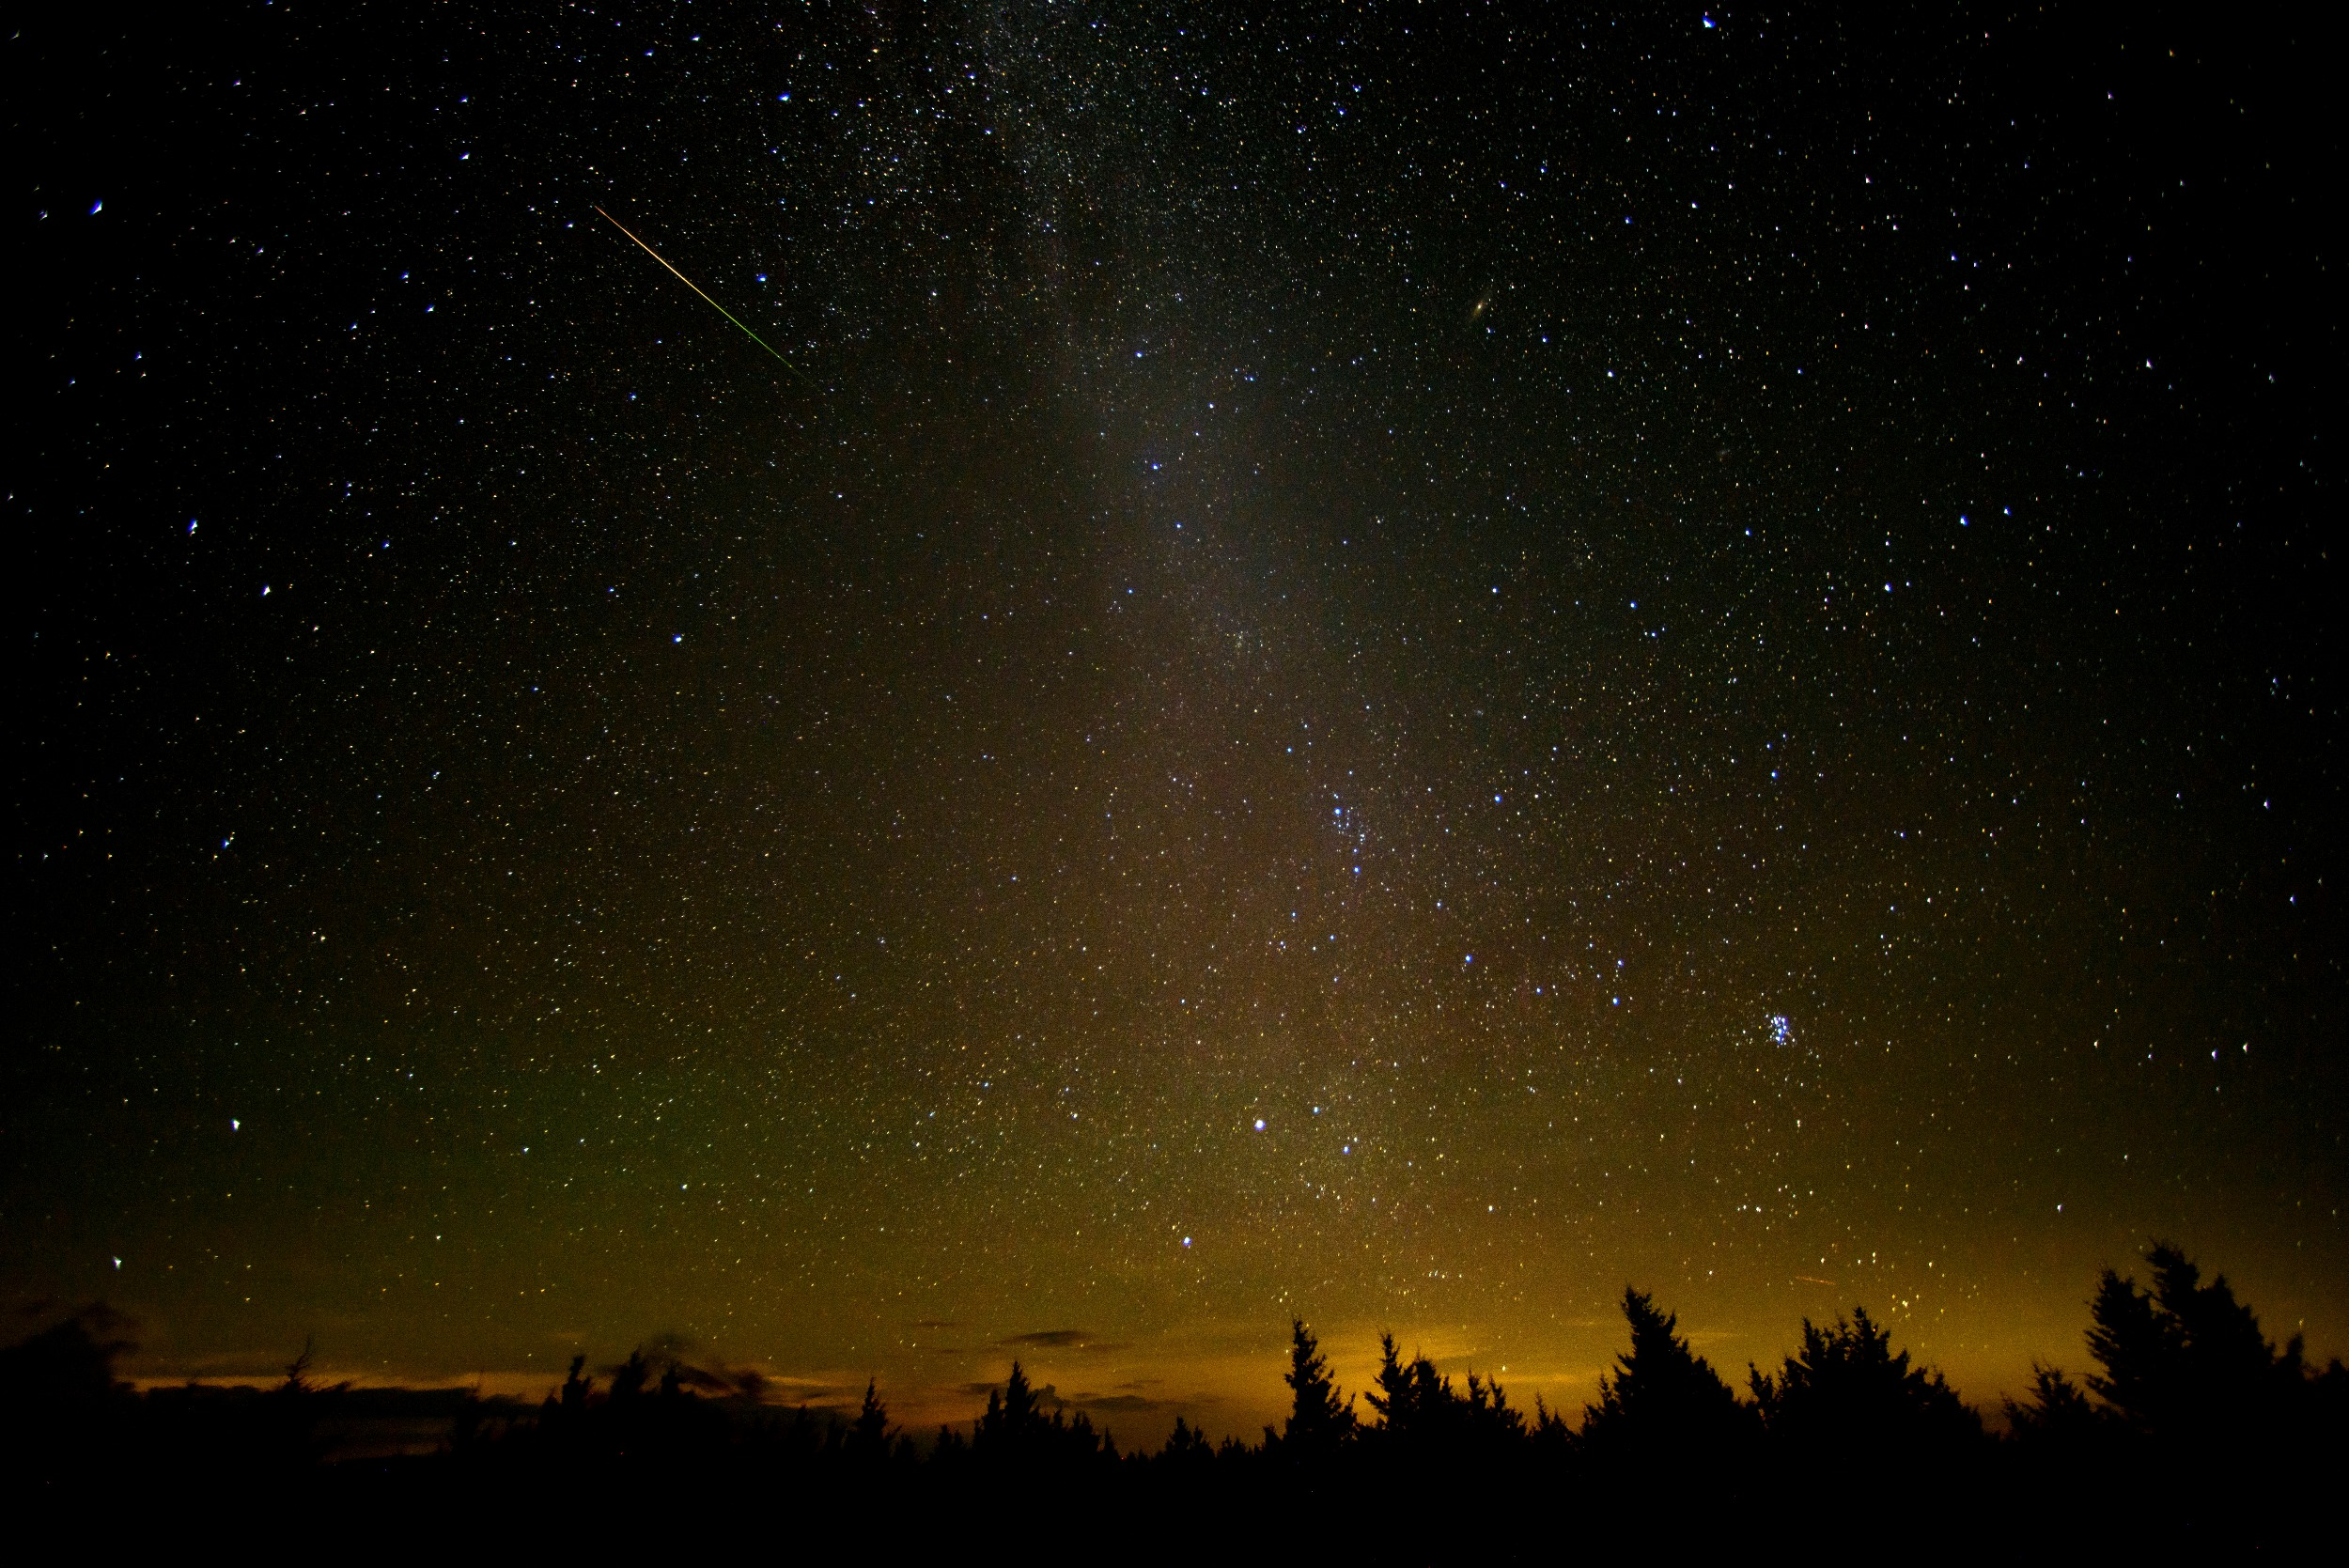 In this 30-second exposure, a meteor streaks across the sky during the annual Perseid meteor shower Friday, Aug. 12, 2016 in Spruce Knob, West Virginia. (NASA/Bill Ingalls photo)